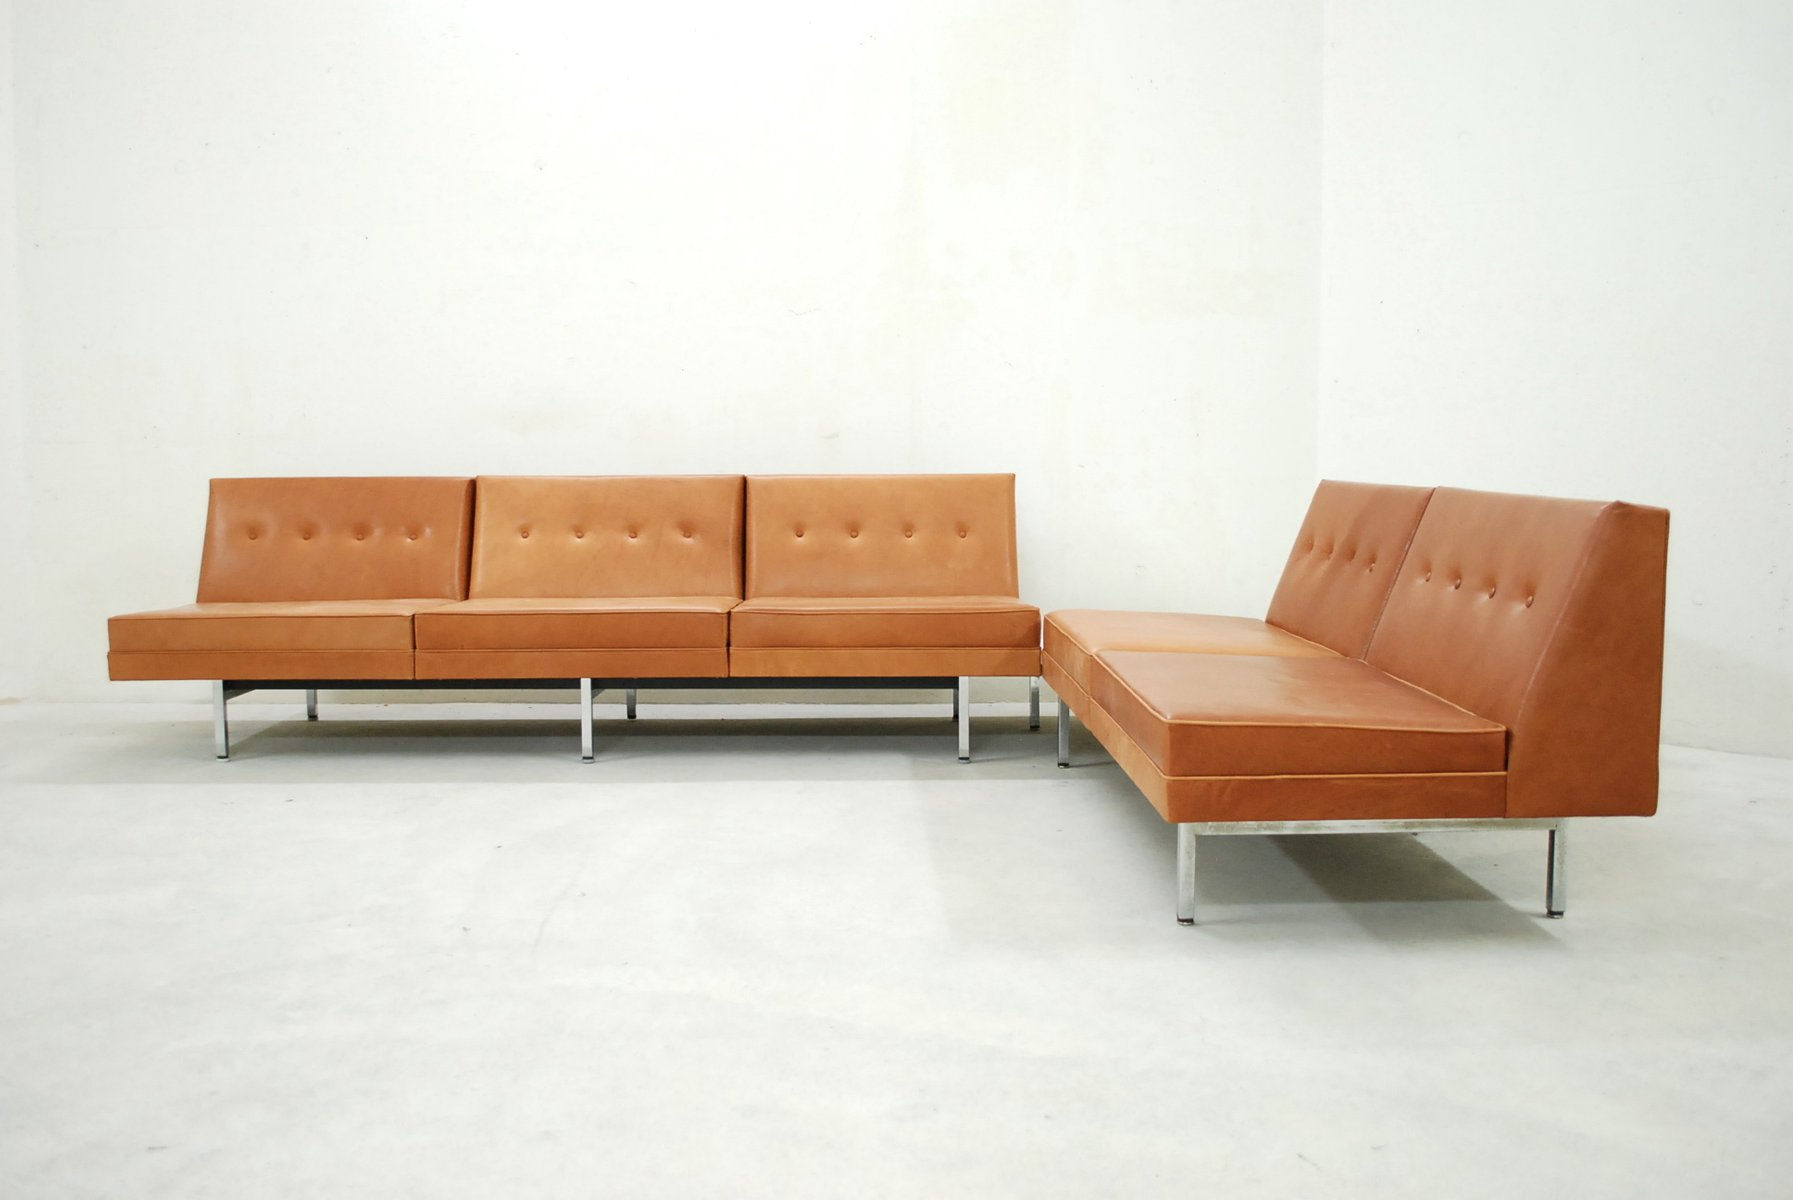 cognac leather modular sofa set by george nelson for herman miller 1968 for sale at pamono. Black Bedroom Furniture Sets. Home Design Ideas